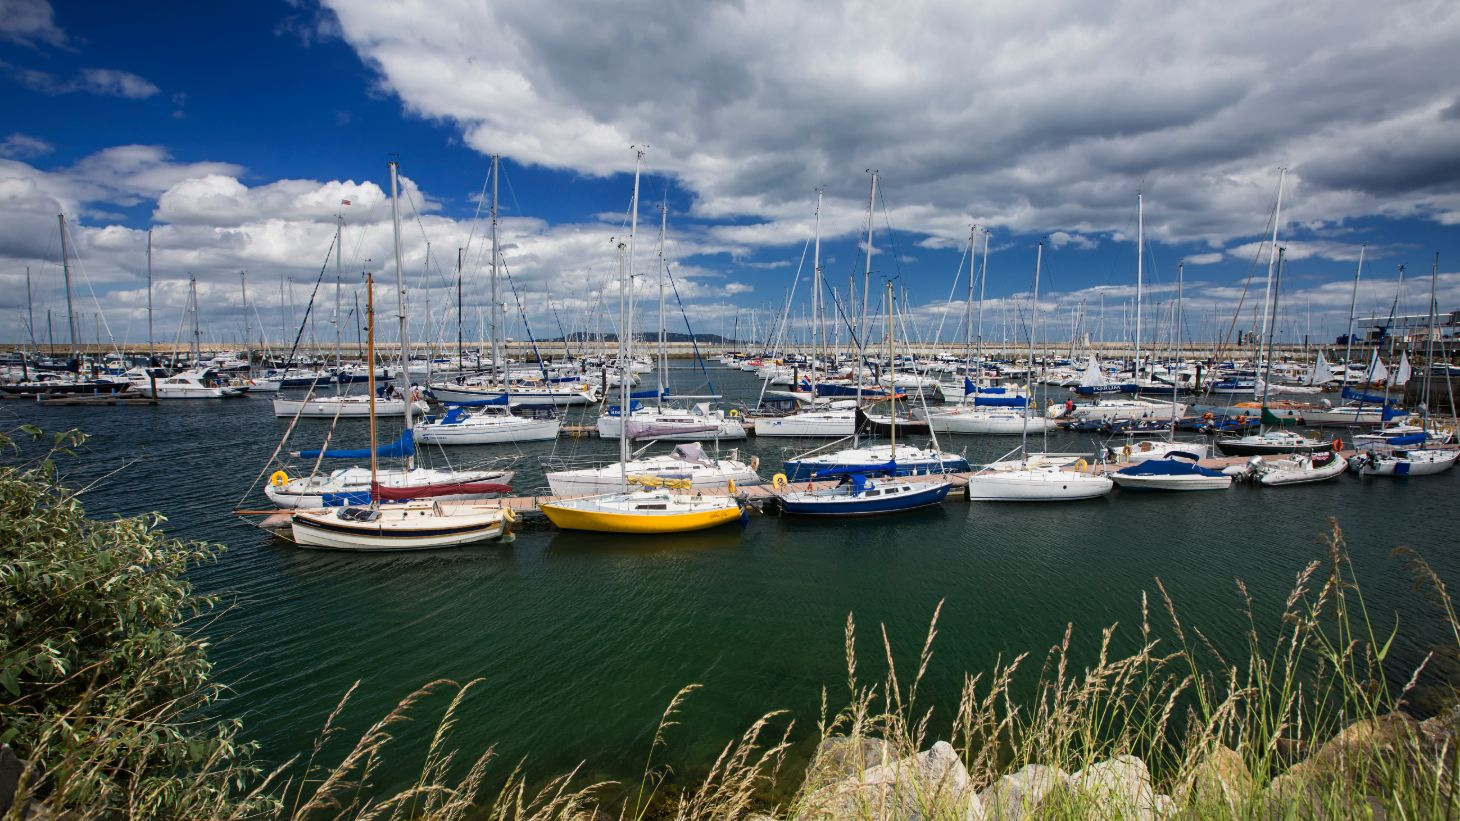 Watch boats bobbing along at Dún Laoghaire Harbour.